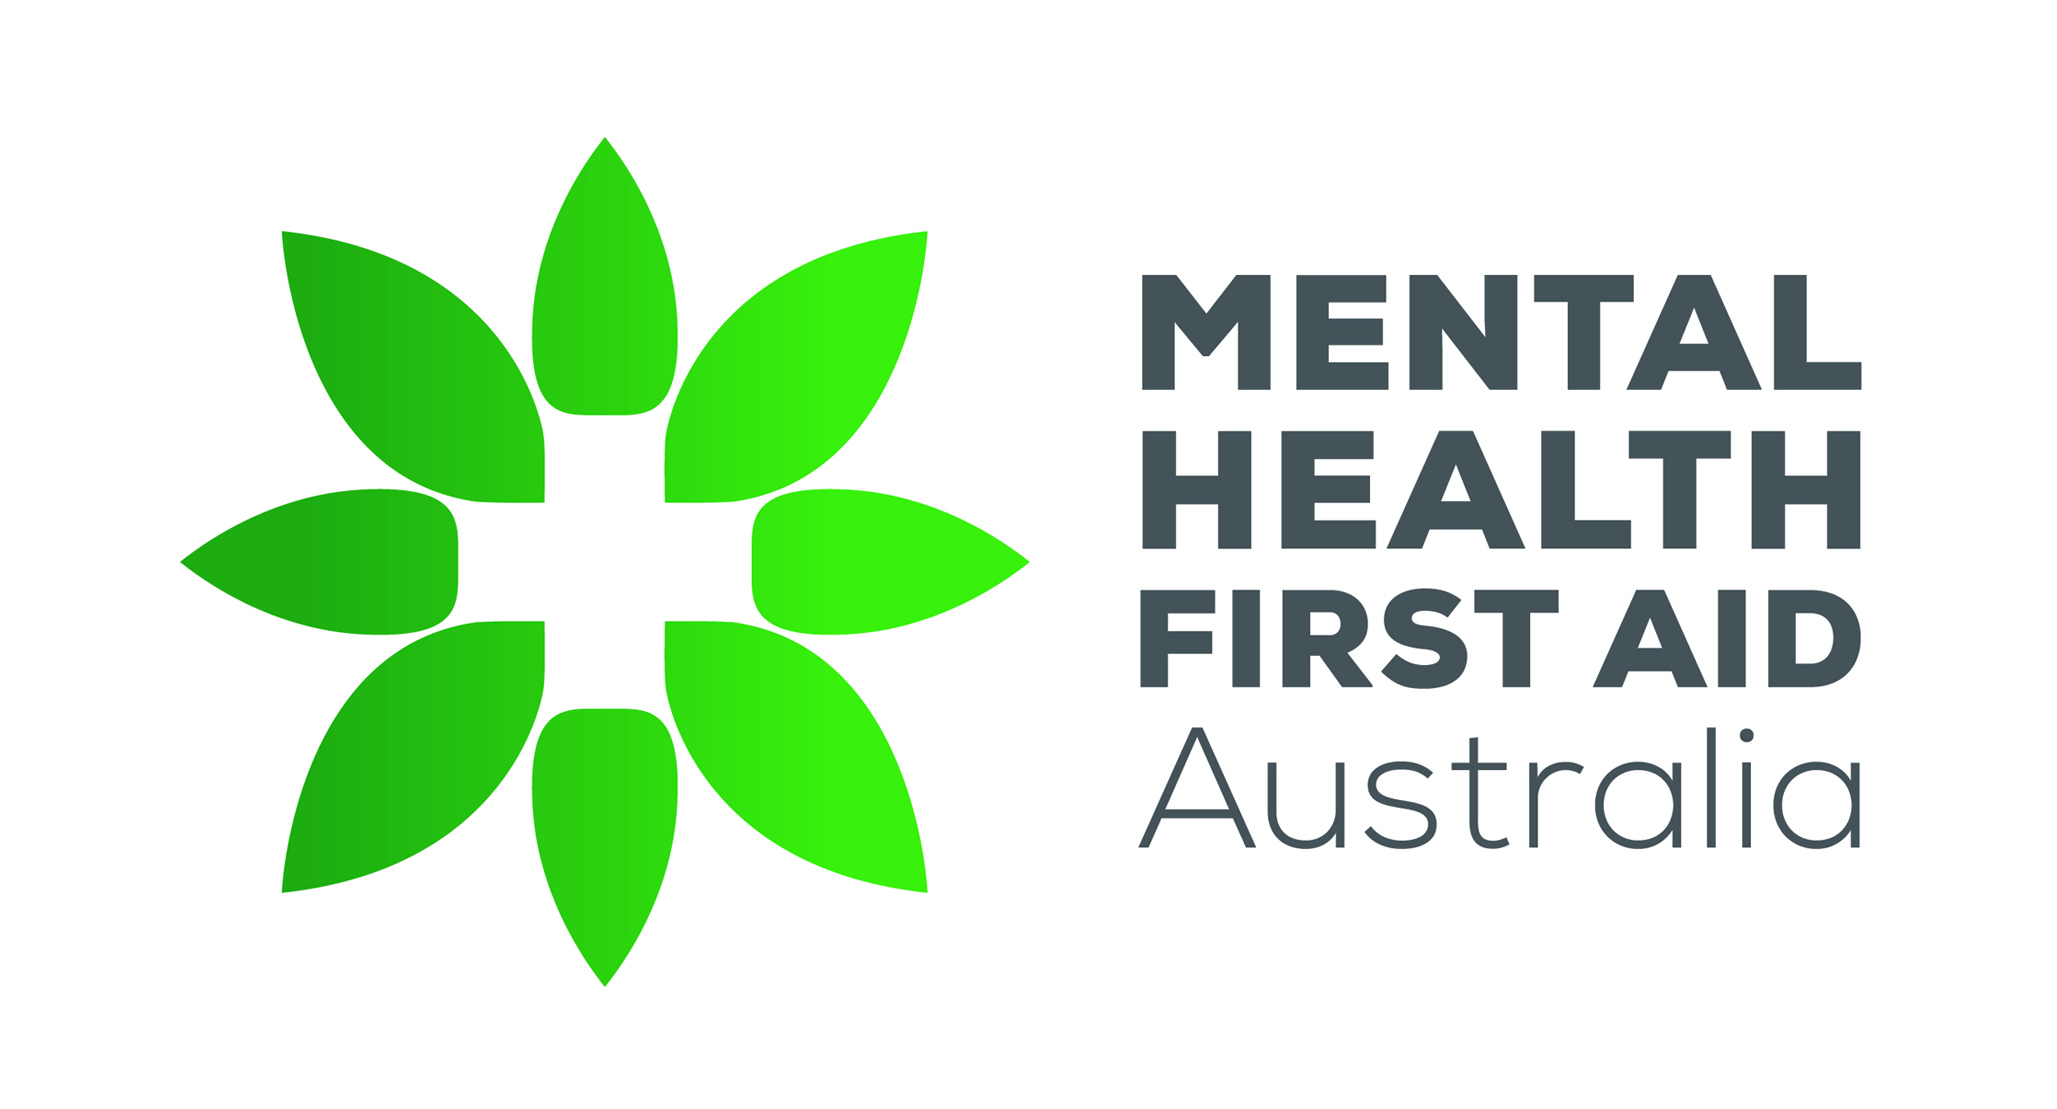 Mental Health First Aid Australia Faqs